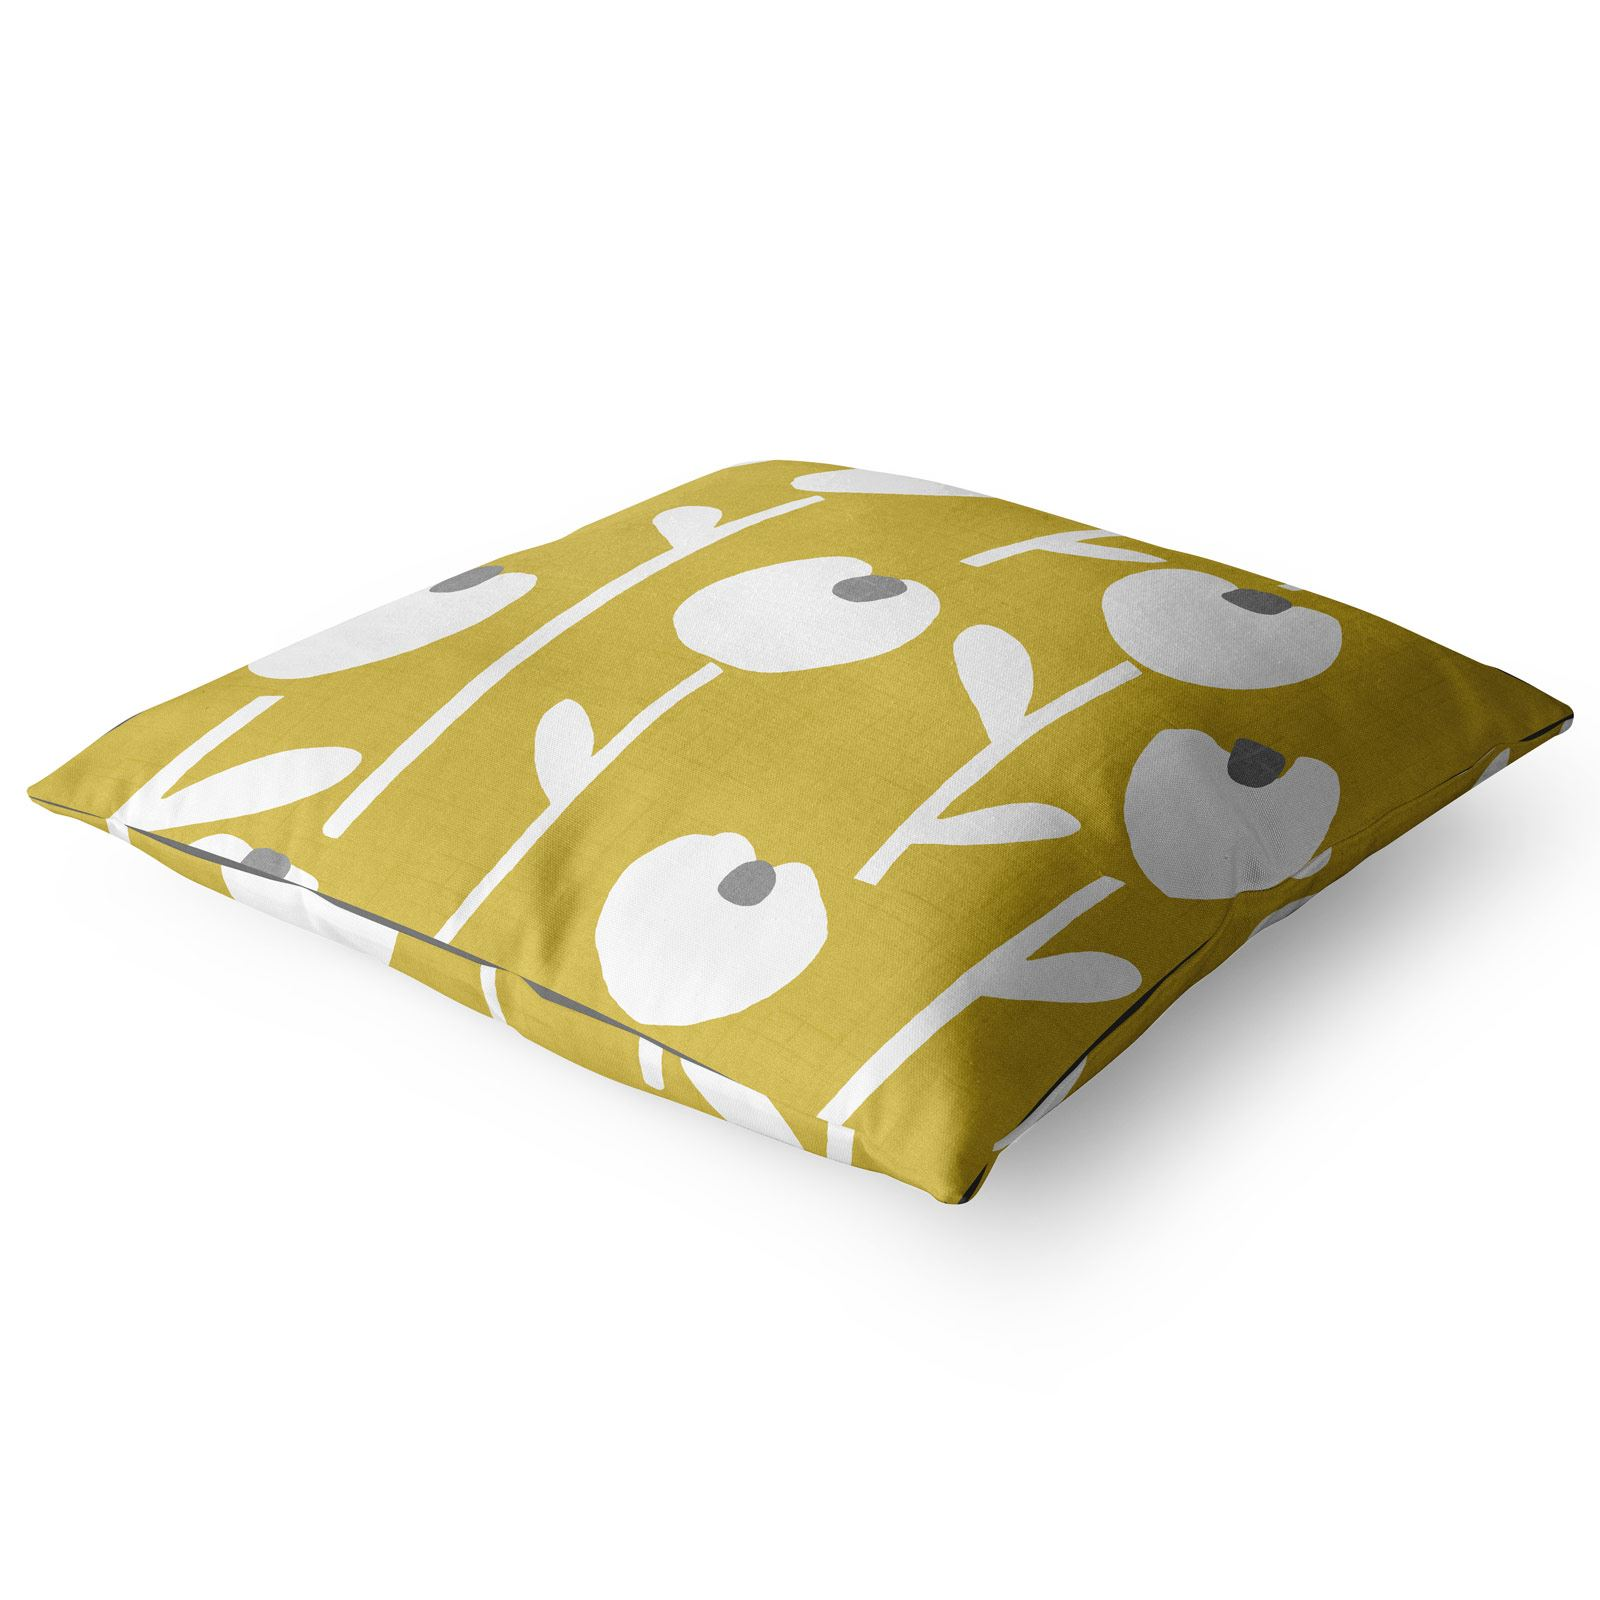 Grey-Ochre-Mustard-Cushion-Cover-Collection-17-034-18-034-Covers-Filled-Cushions thumbnail 9